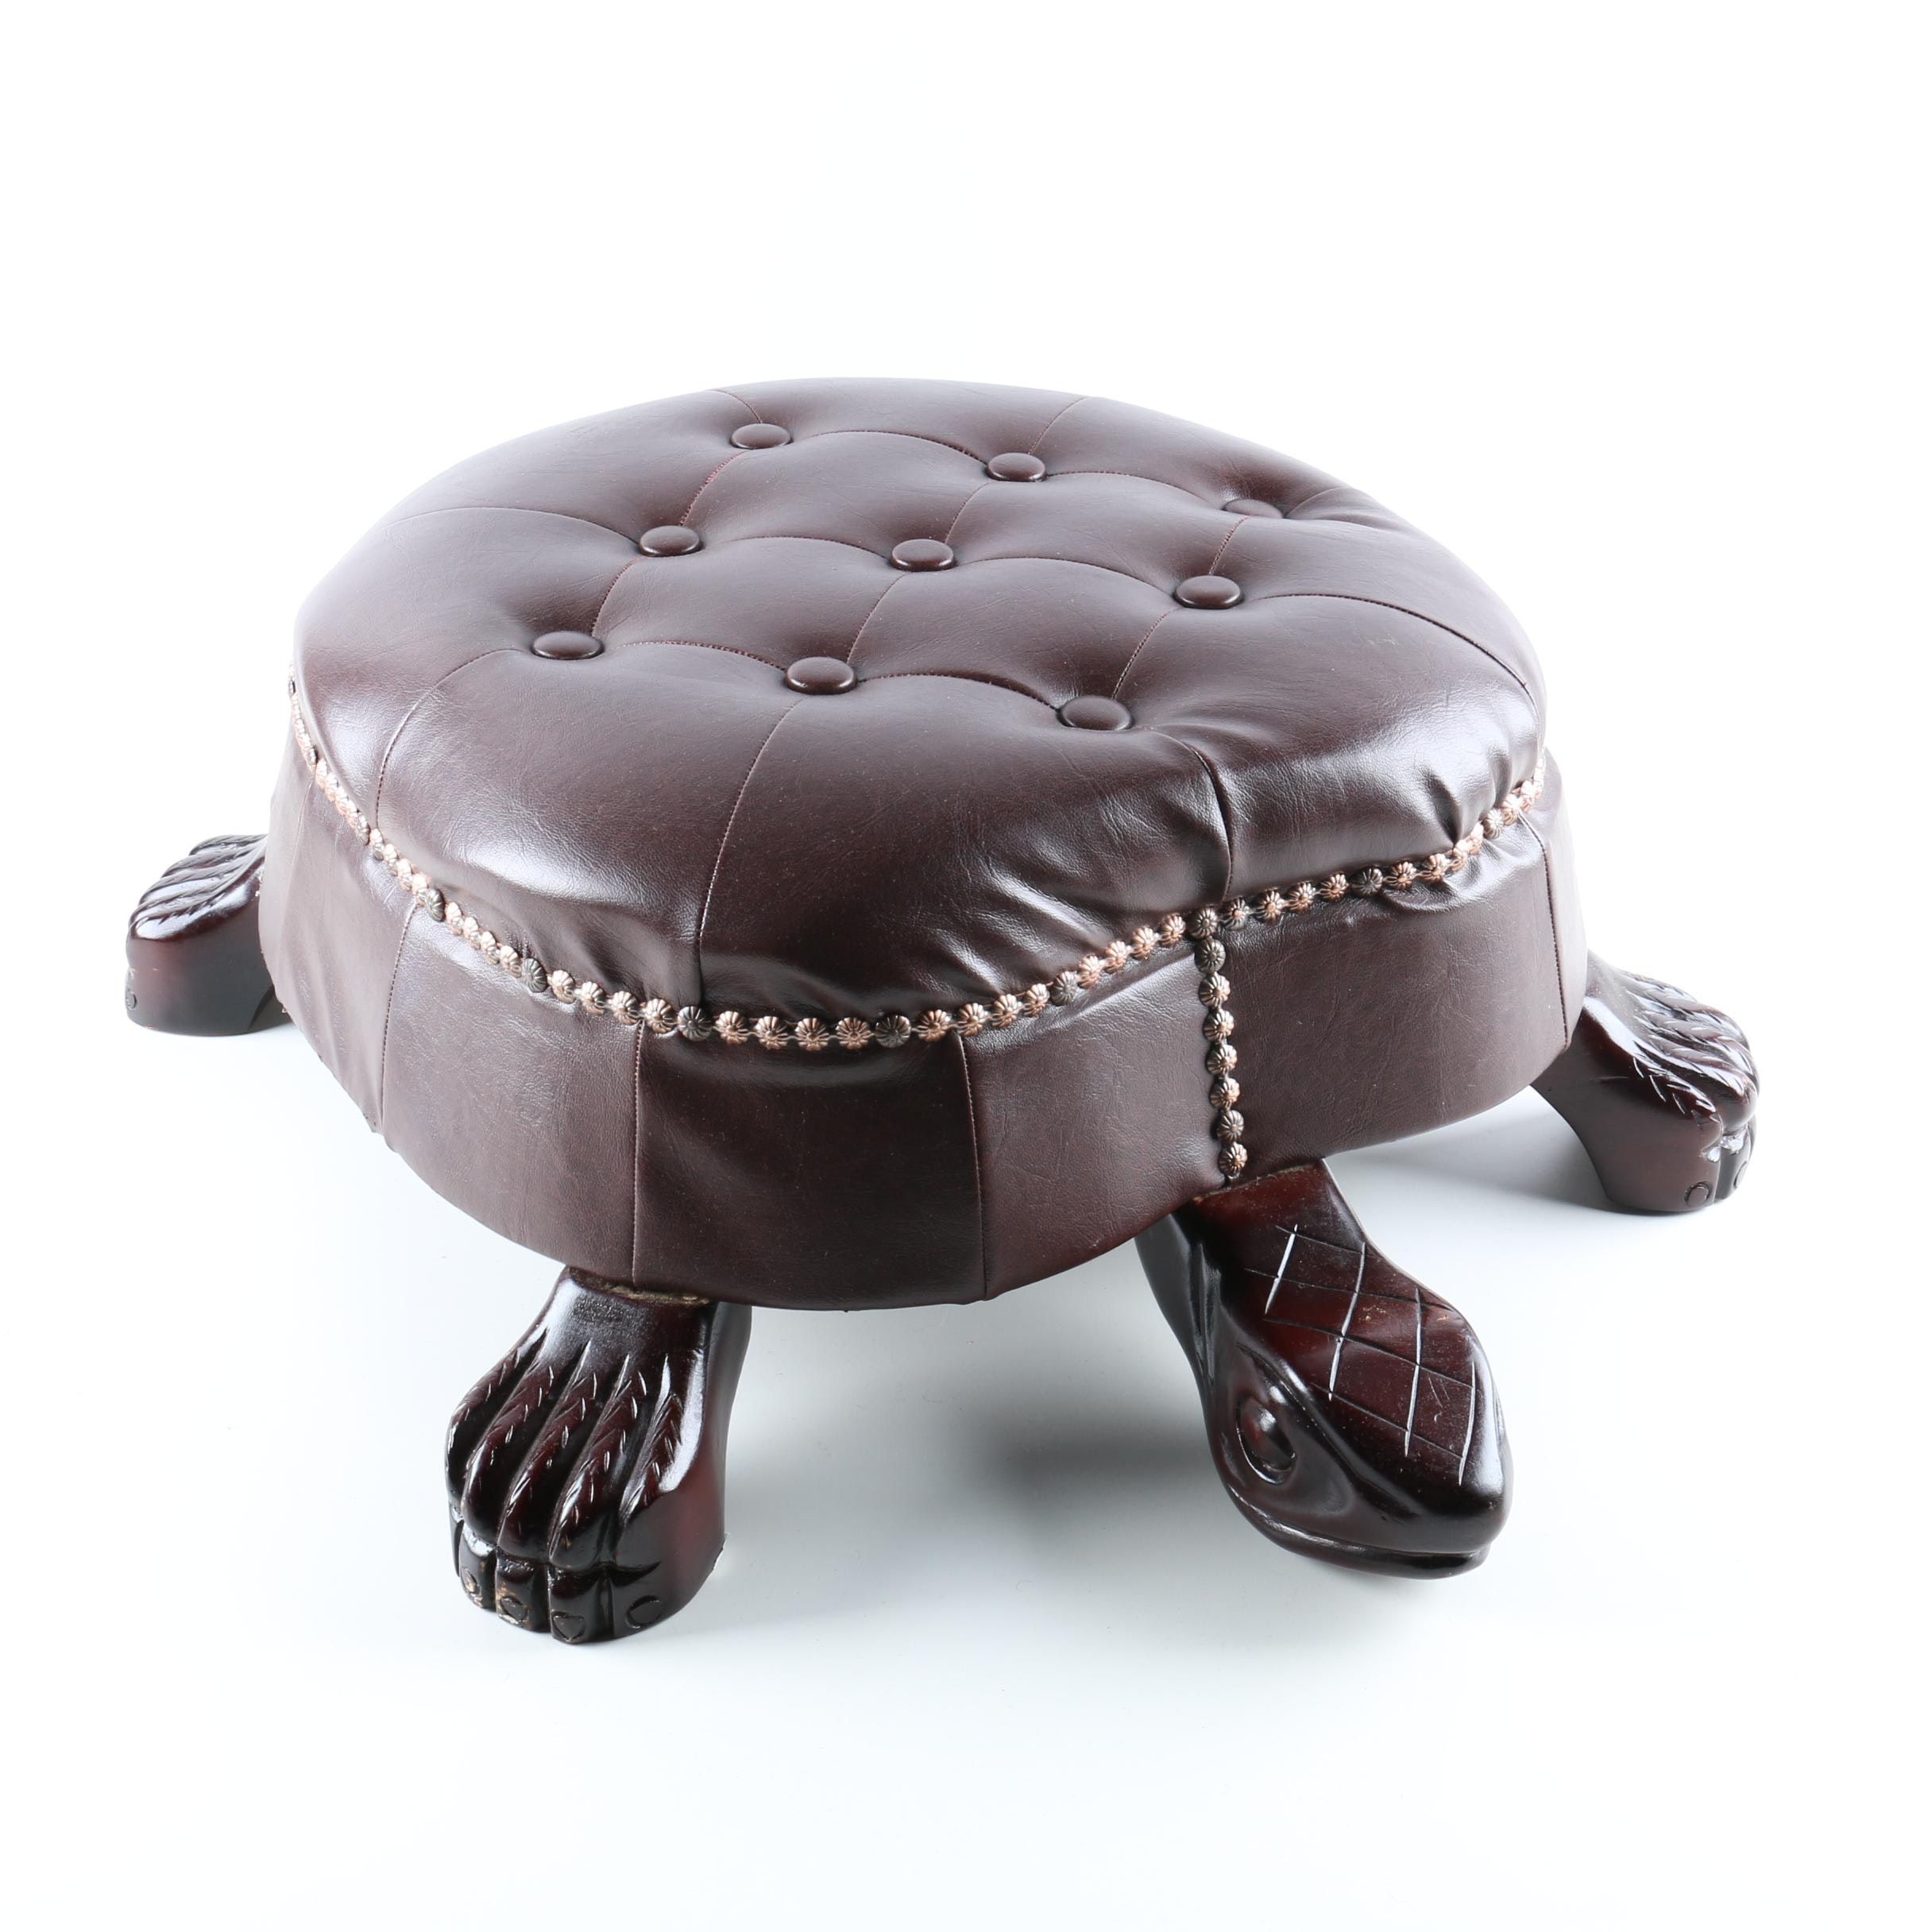 Carved Wood and Faux Leather Tortoise Ottoman